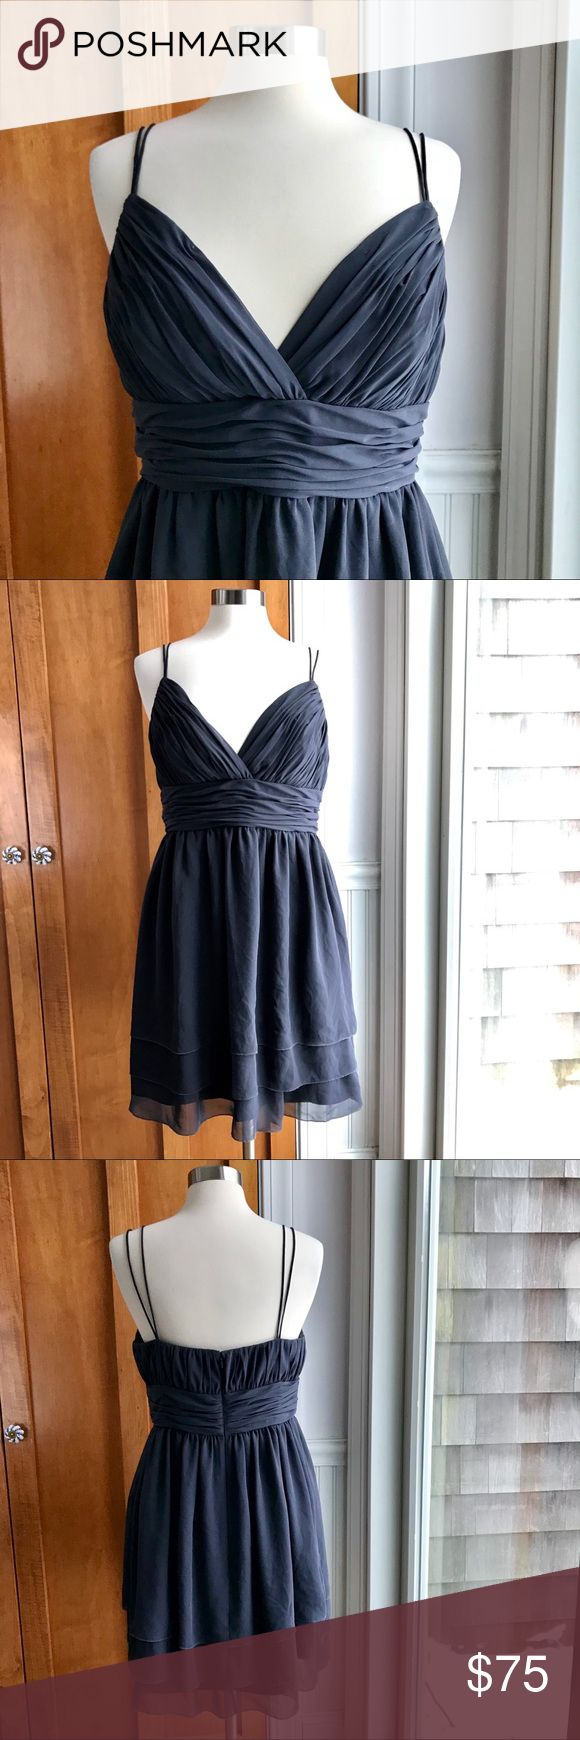 """Calvin Klein gray evening dress w/tiered skirt EUC- No flaws to note. 100% polyester. Fully lined. Gathered Grecian-like design.  SO pretty and flattering!!  Double spaghetti straps.  Crossover v-neck bodice.  Fitted waist.  Triple layered flowing skirt.  Back zip. Approximate measurements taken with garment laying flat: underarm to underarm 18"""", waist 16"""", hips 26"""", shoulder seam to waist 14"""", shoulder seam to hem 37"""". Calvin Klein Dresses Midi"""